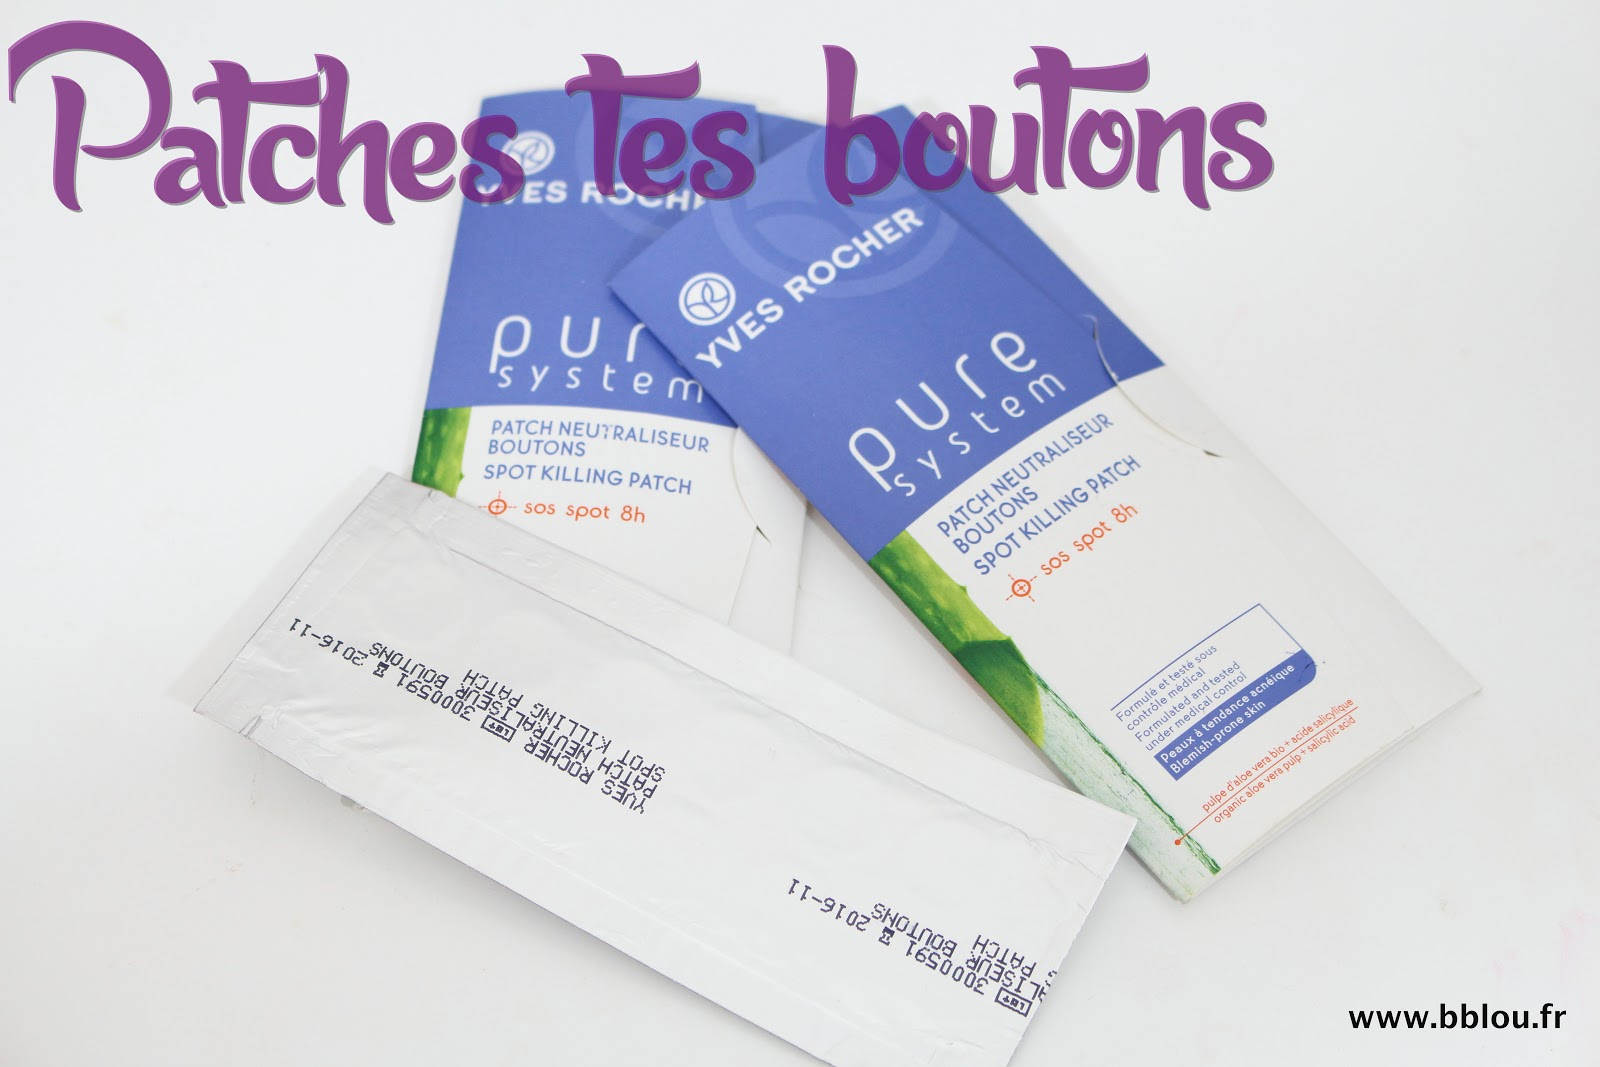 http://www.beautybylou.com/2014/05/yves-rocher-me-patche-et-ca-marche.html